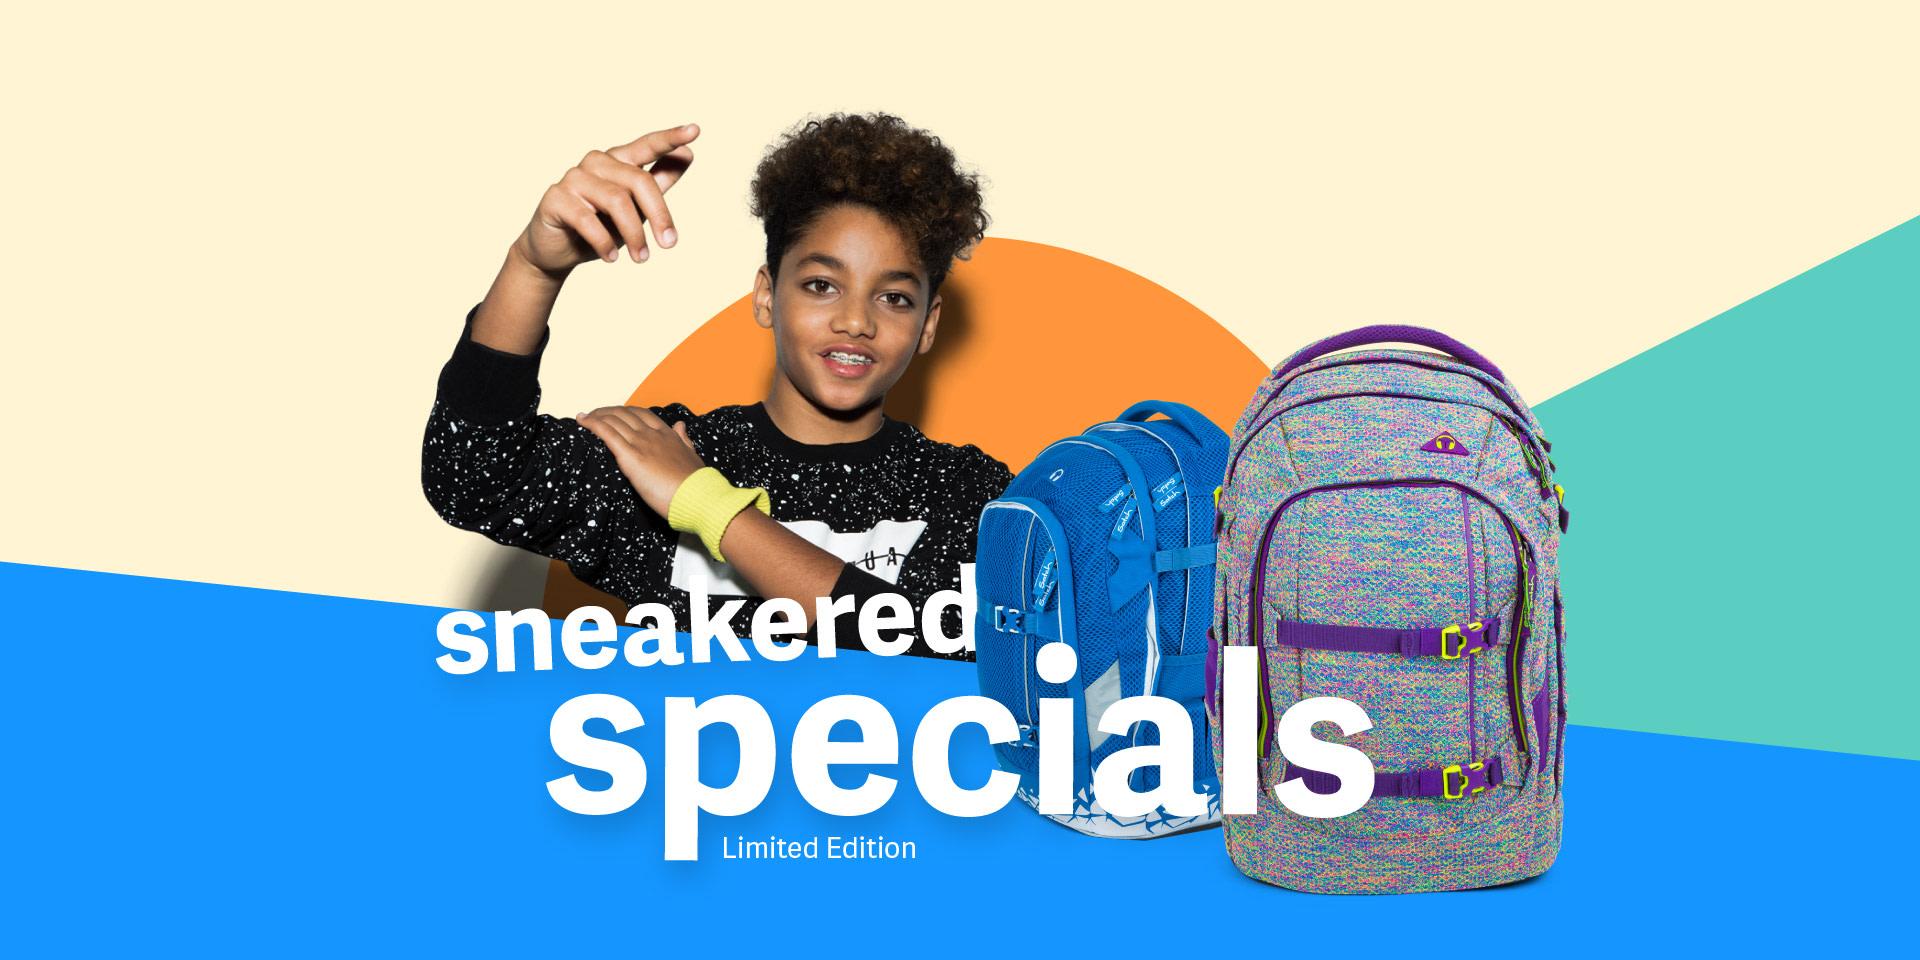 sneakered specials limited edition hero